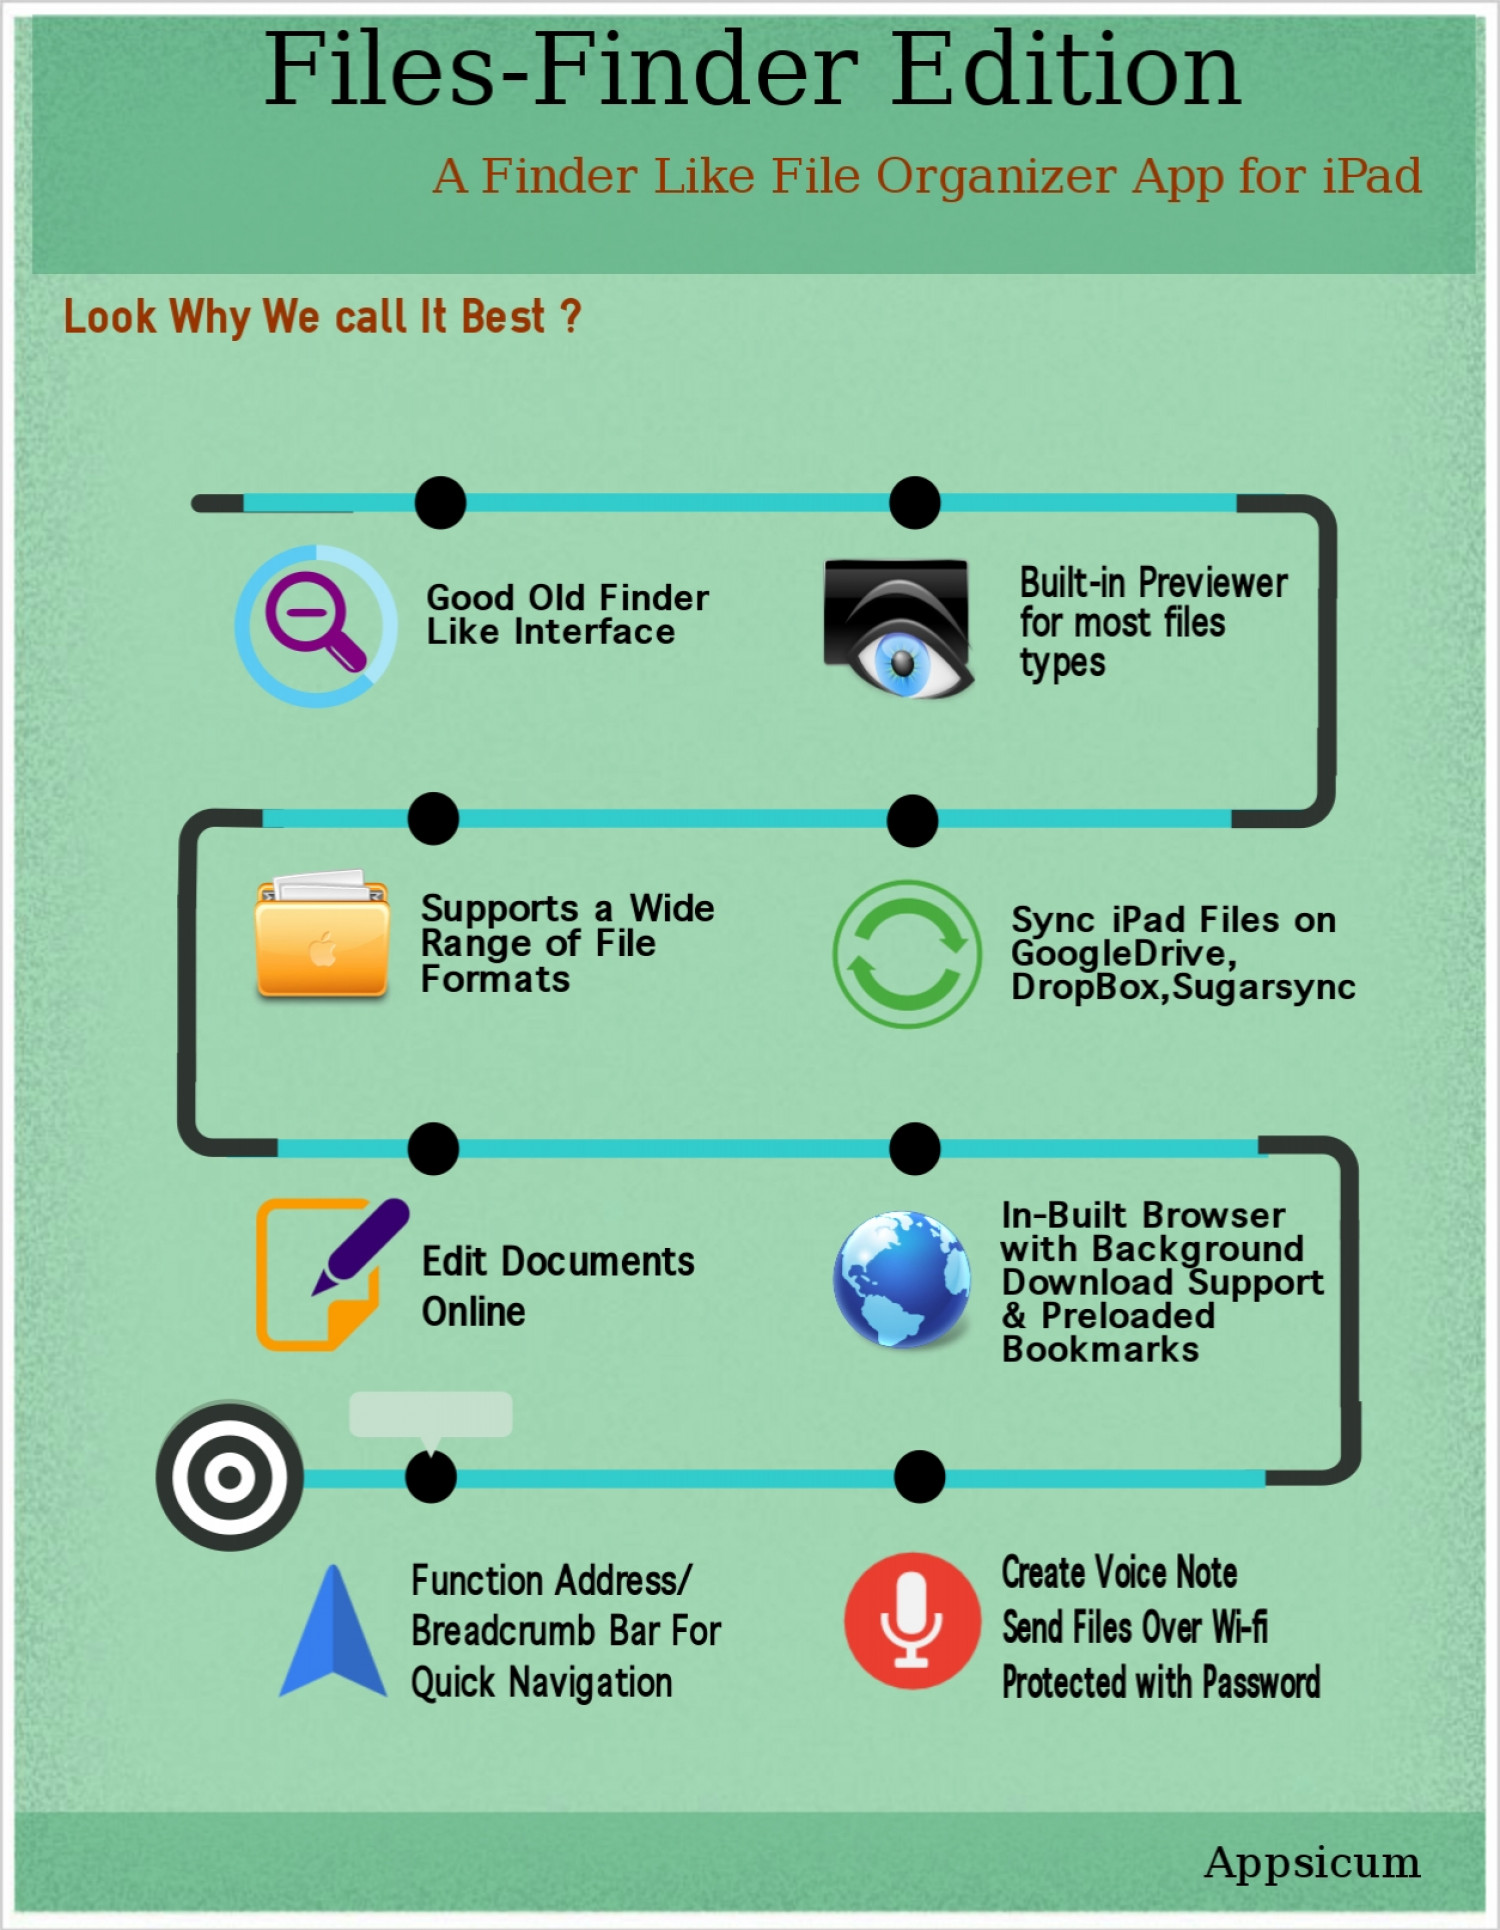 Files-Finder Edition - A Document Manager for iPad with Old Finder Like Feature Set Infographic